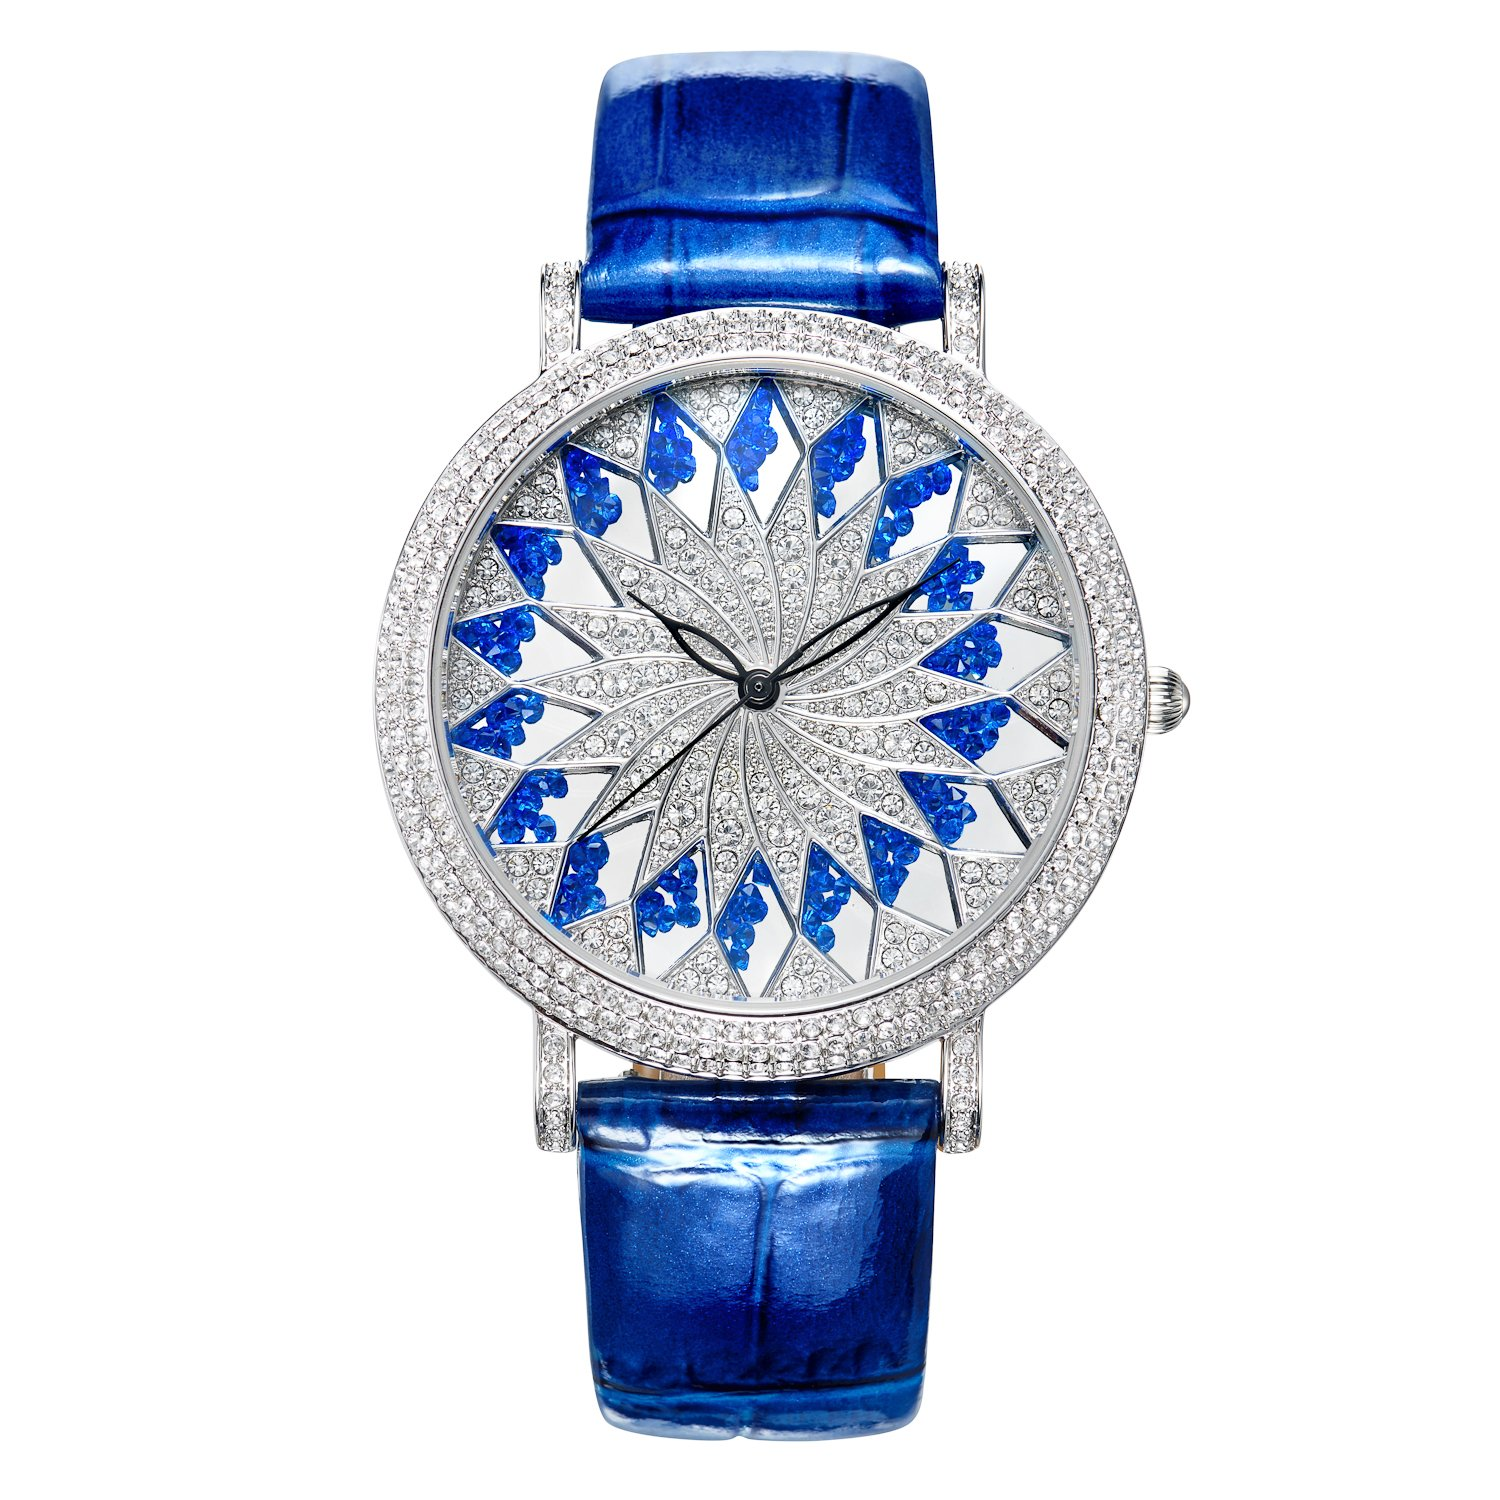 Matisse Fashion Schneeflocke Full Kristall Zifferblatt & Fall Damen Fashion Strap Quarz Leder Armbanduhr - blau